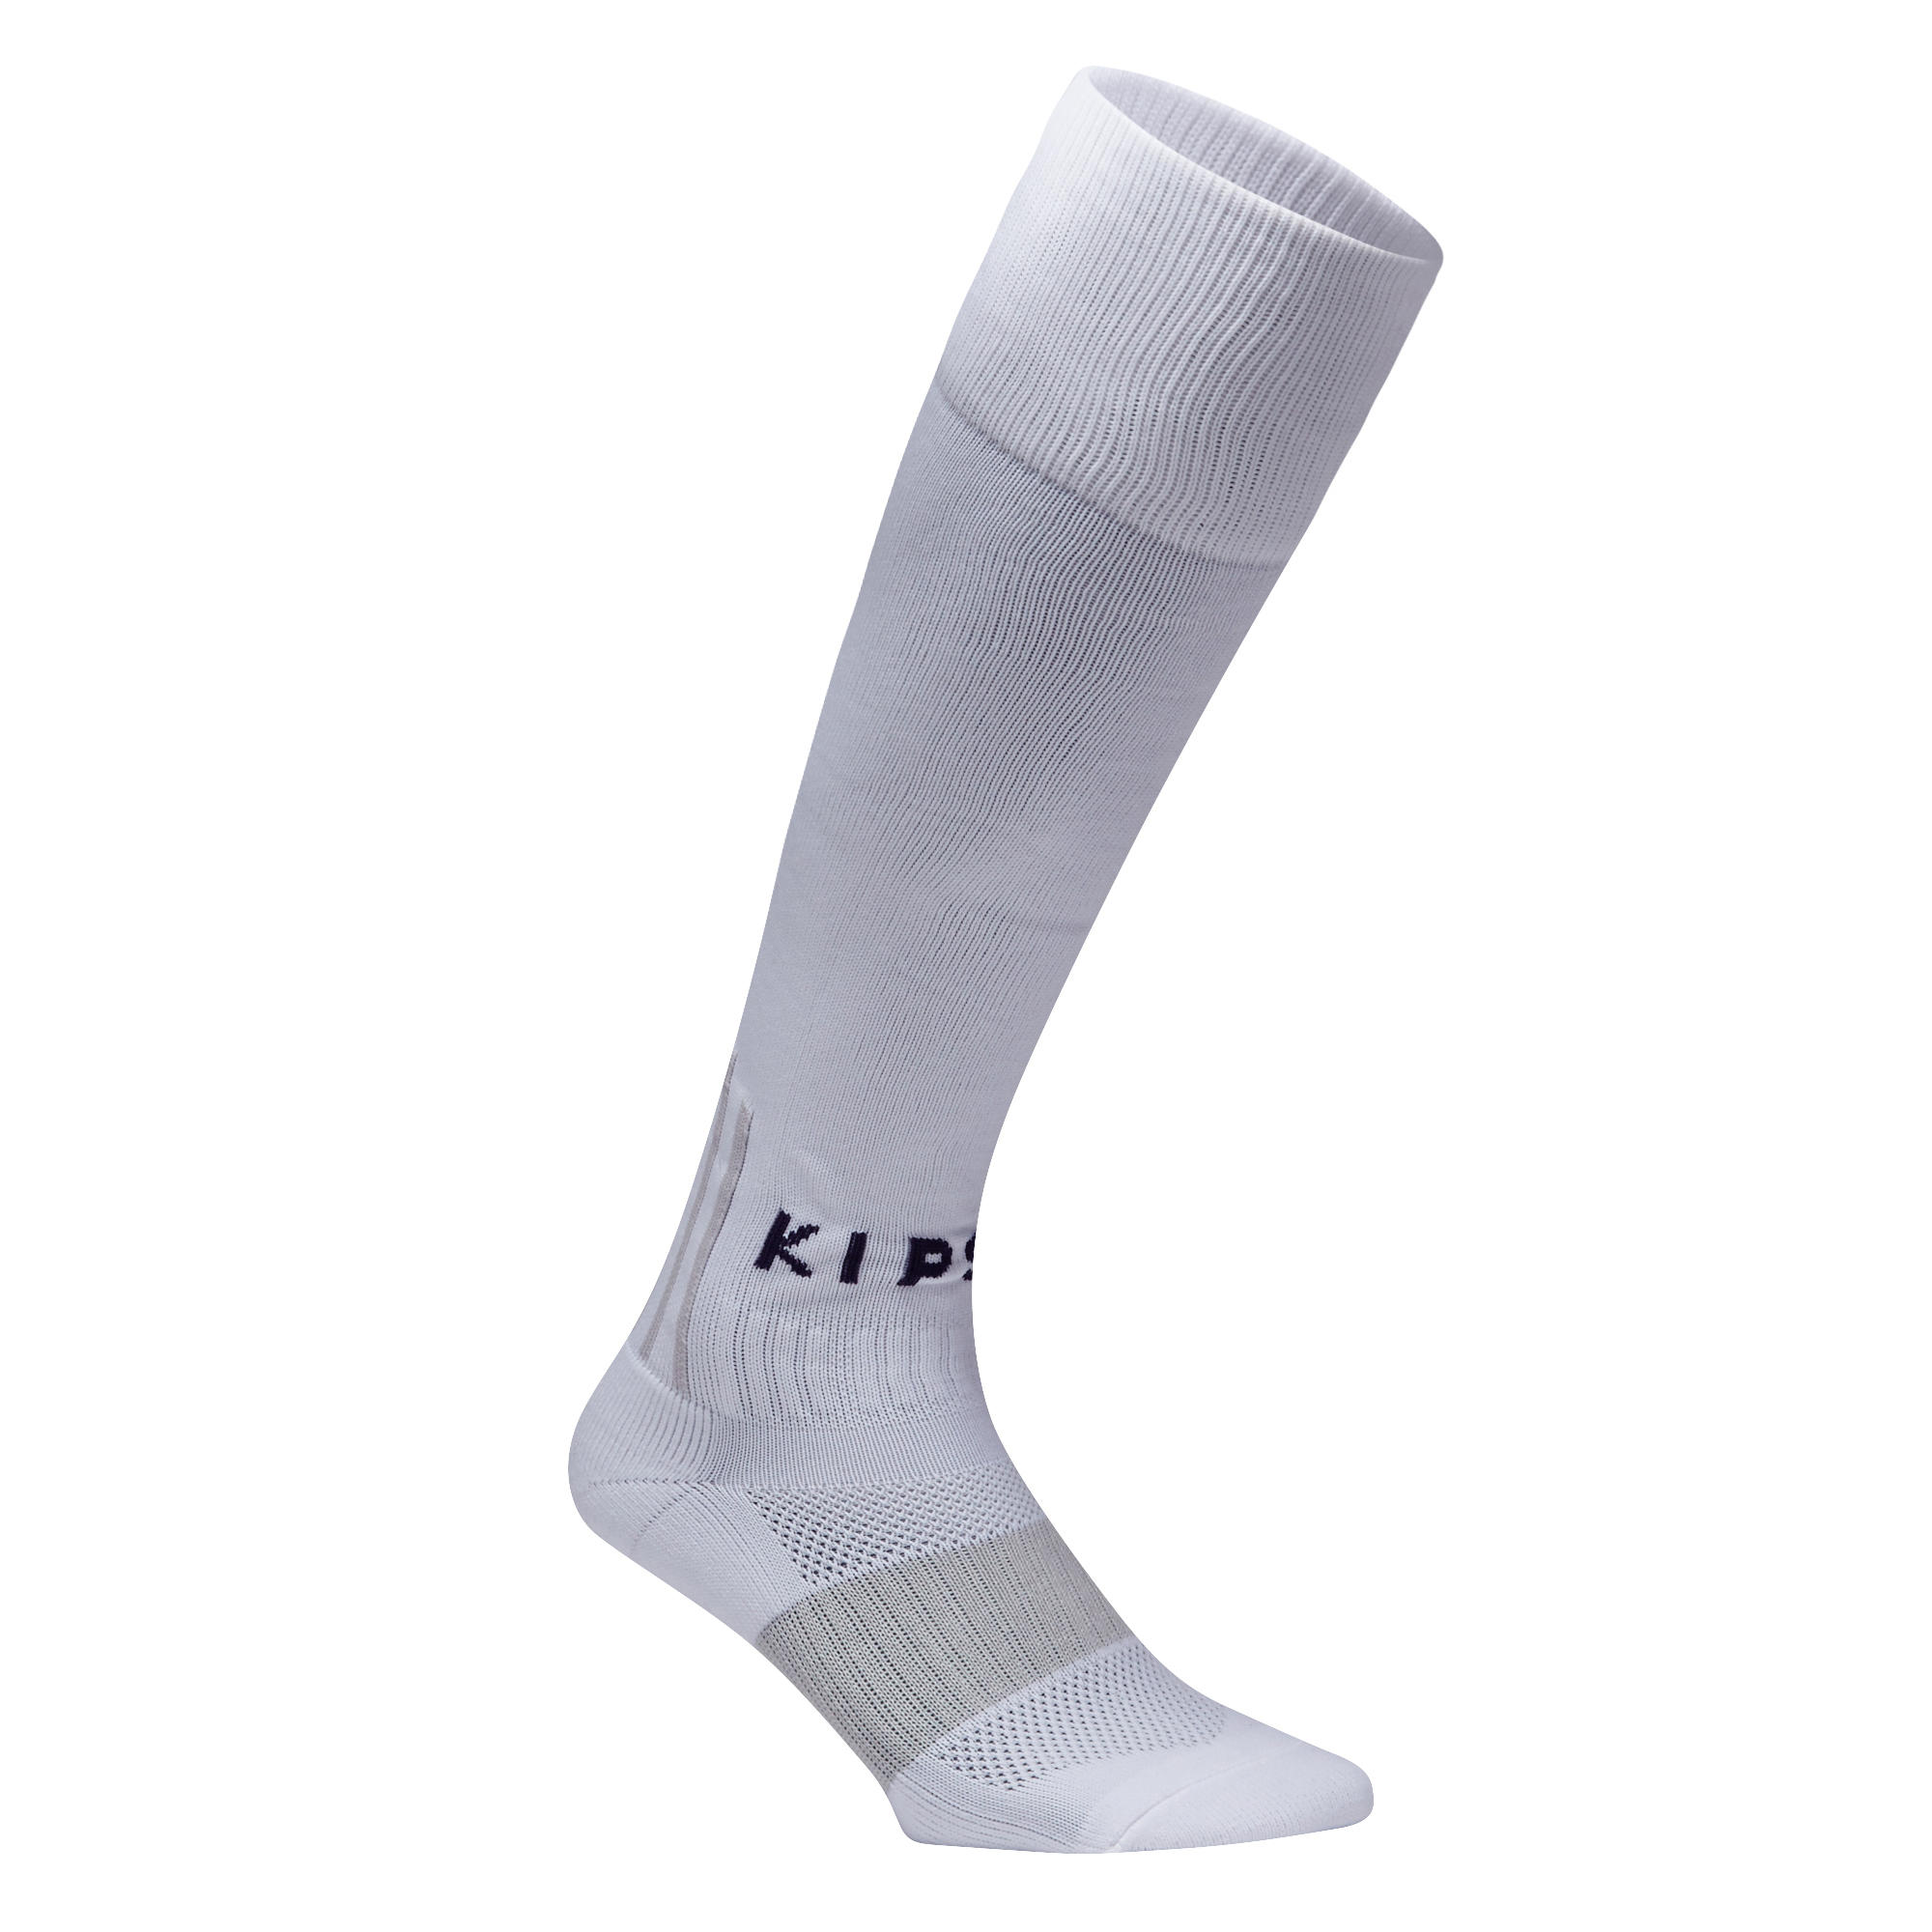 F500 Adult Soccer Socks - White